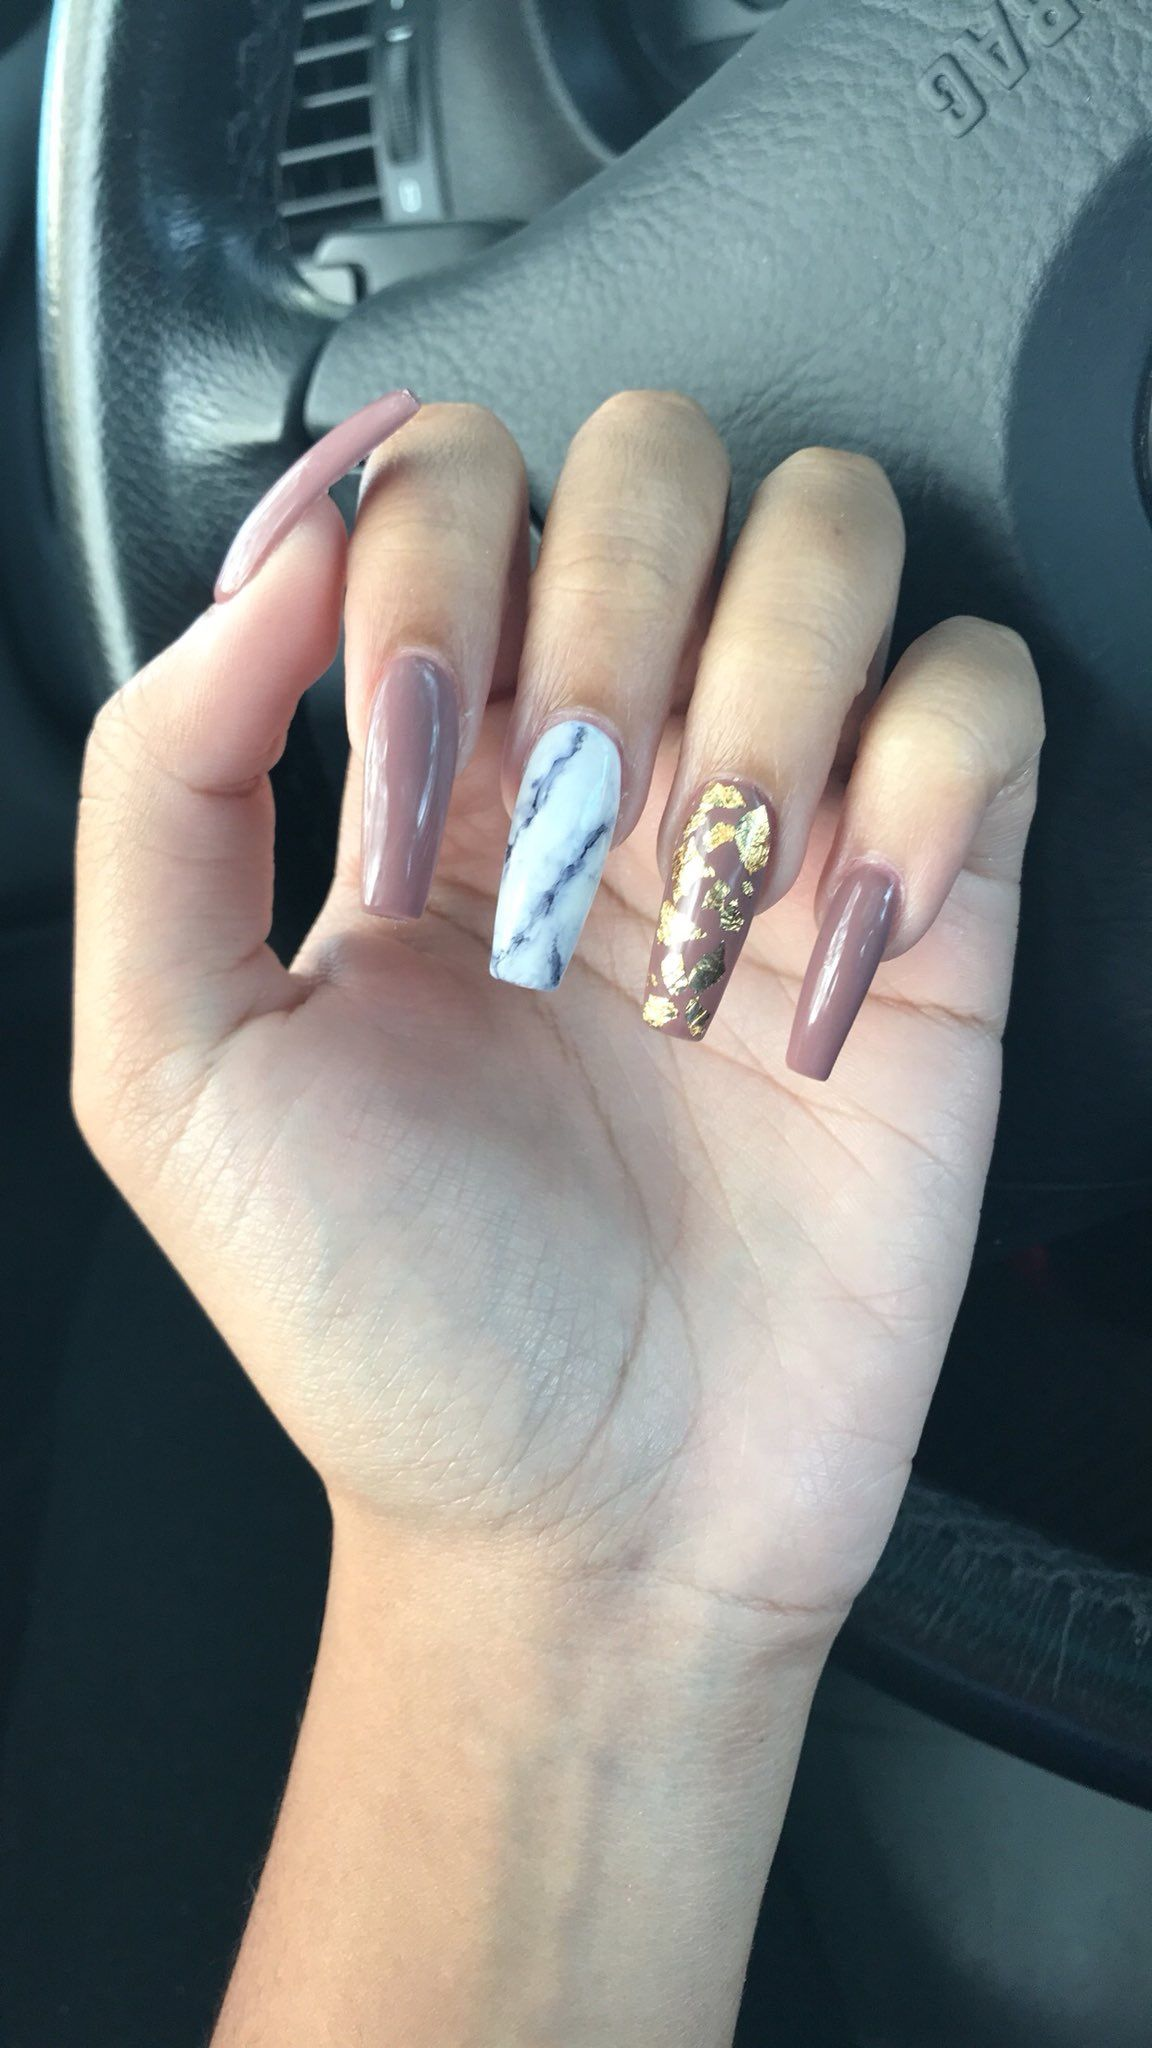 Check out @imanityee ❤ | Nails | Pinterest | Nageldesign ...